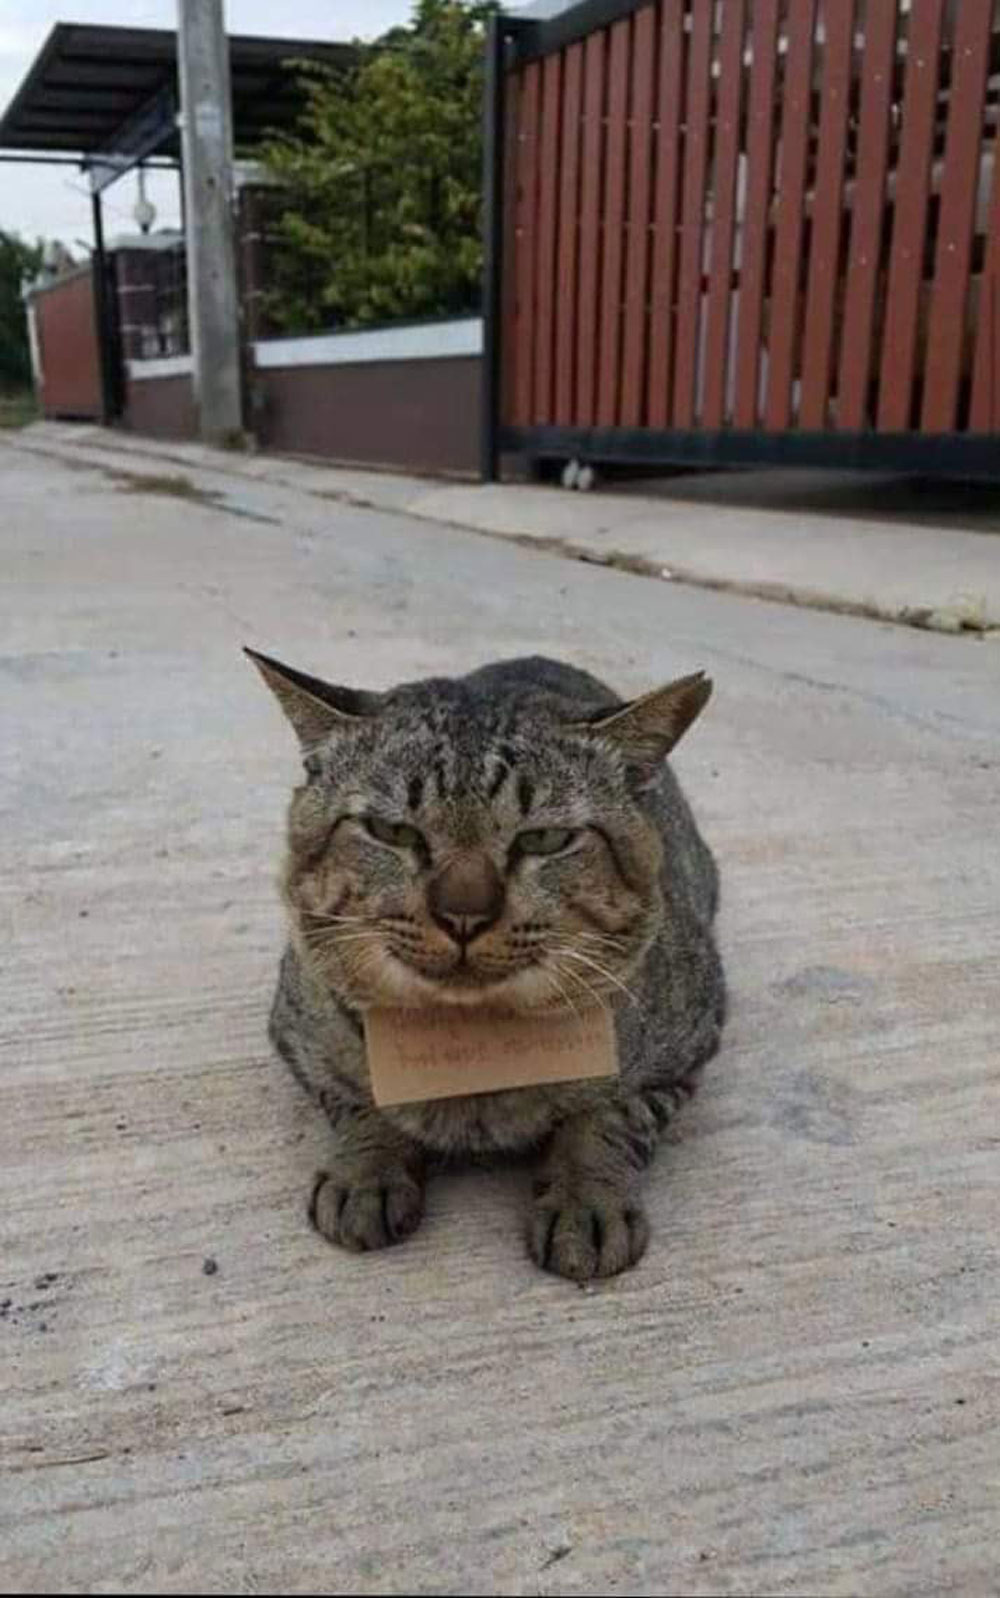 A note was left on the cat's neck by the shop owner who fed him fish.